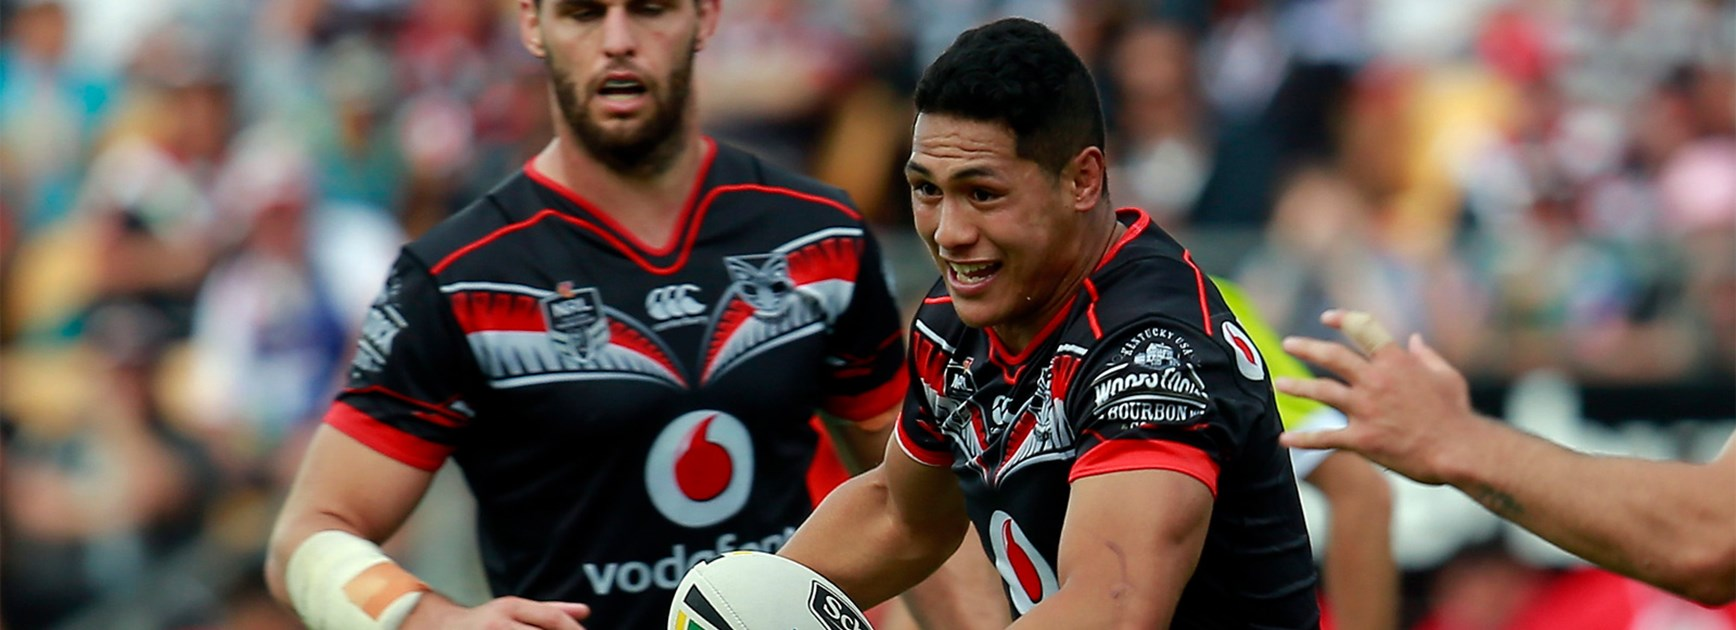 Roger Tuivasa-Sheck takes a run against the Melbourne Storm in Round 3.